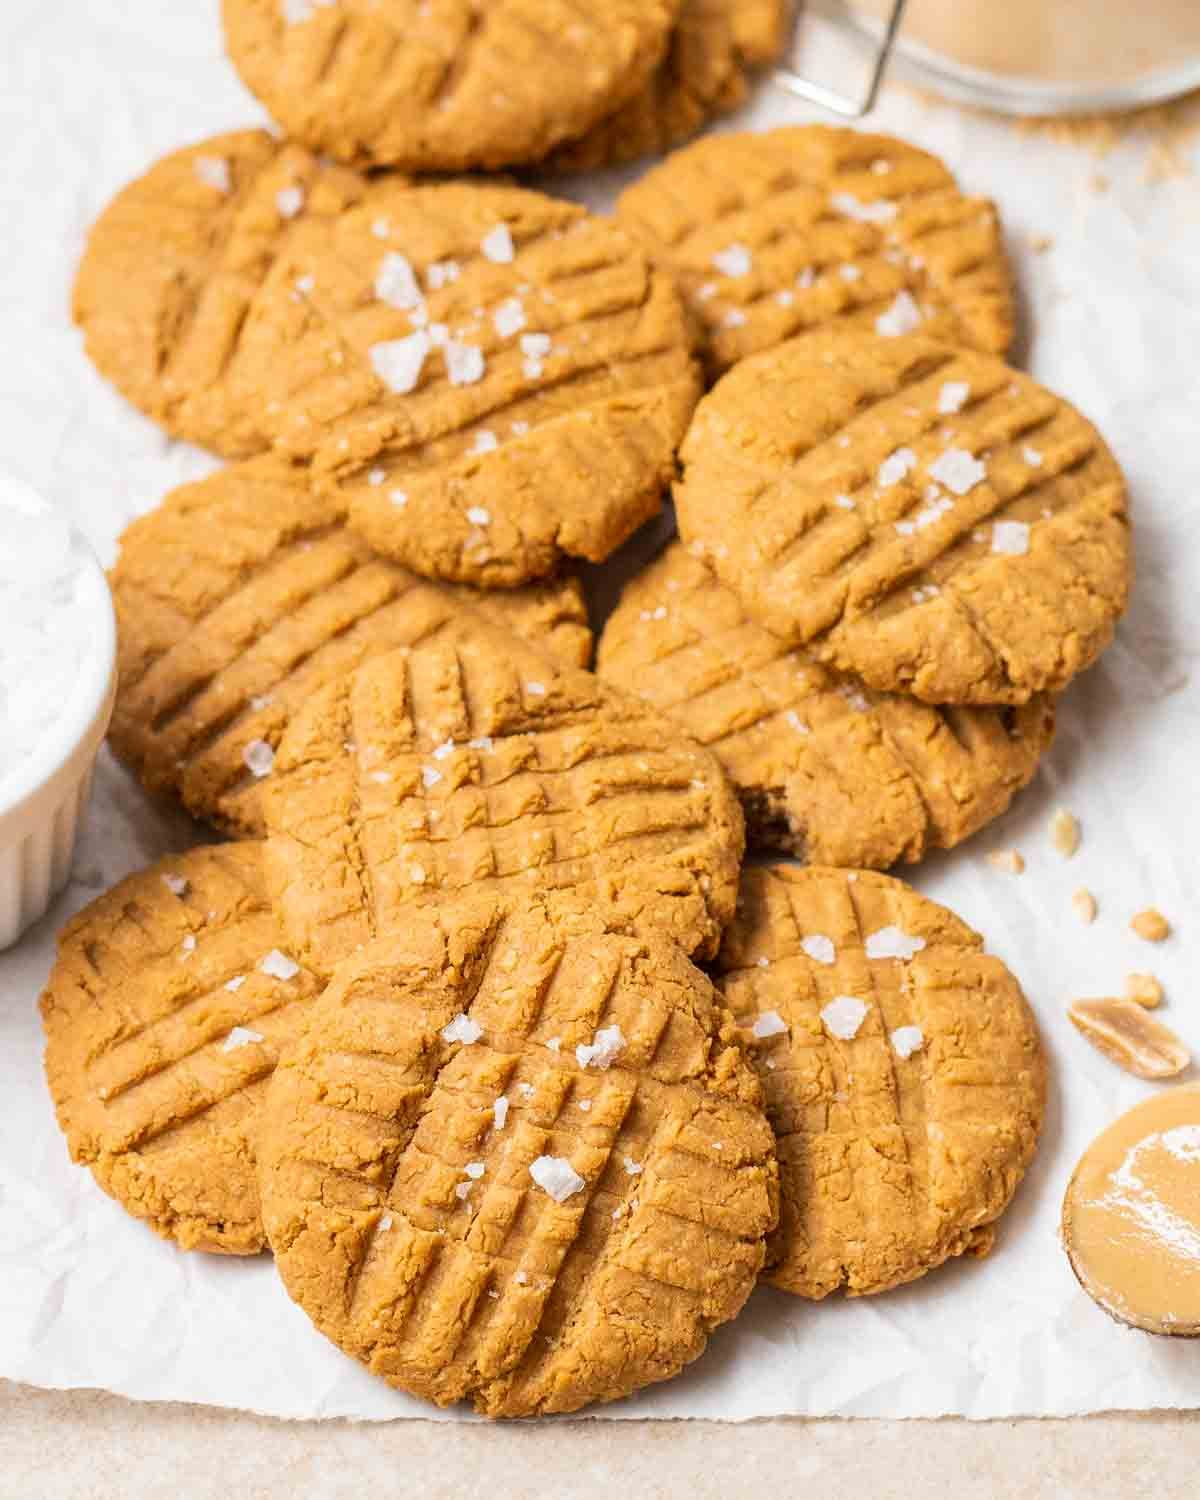 PB2 cookies arranged on a parchment paper topped with sea salt flakes.